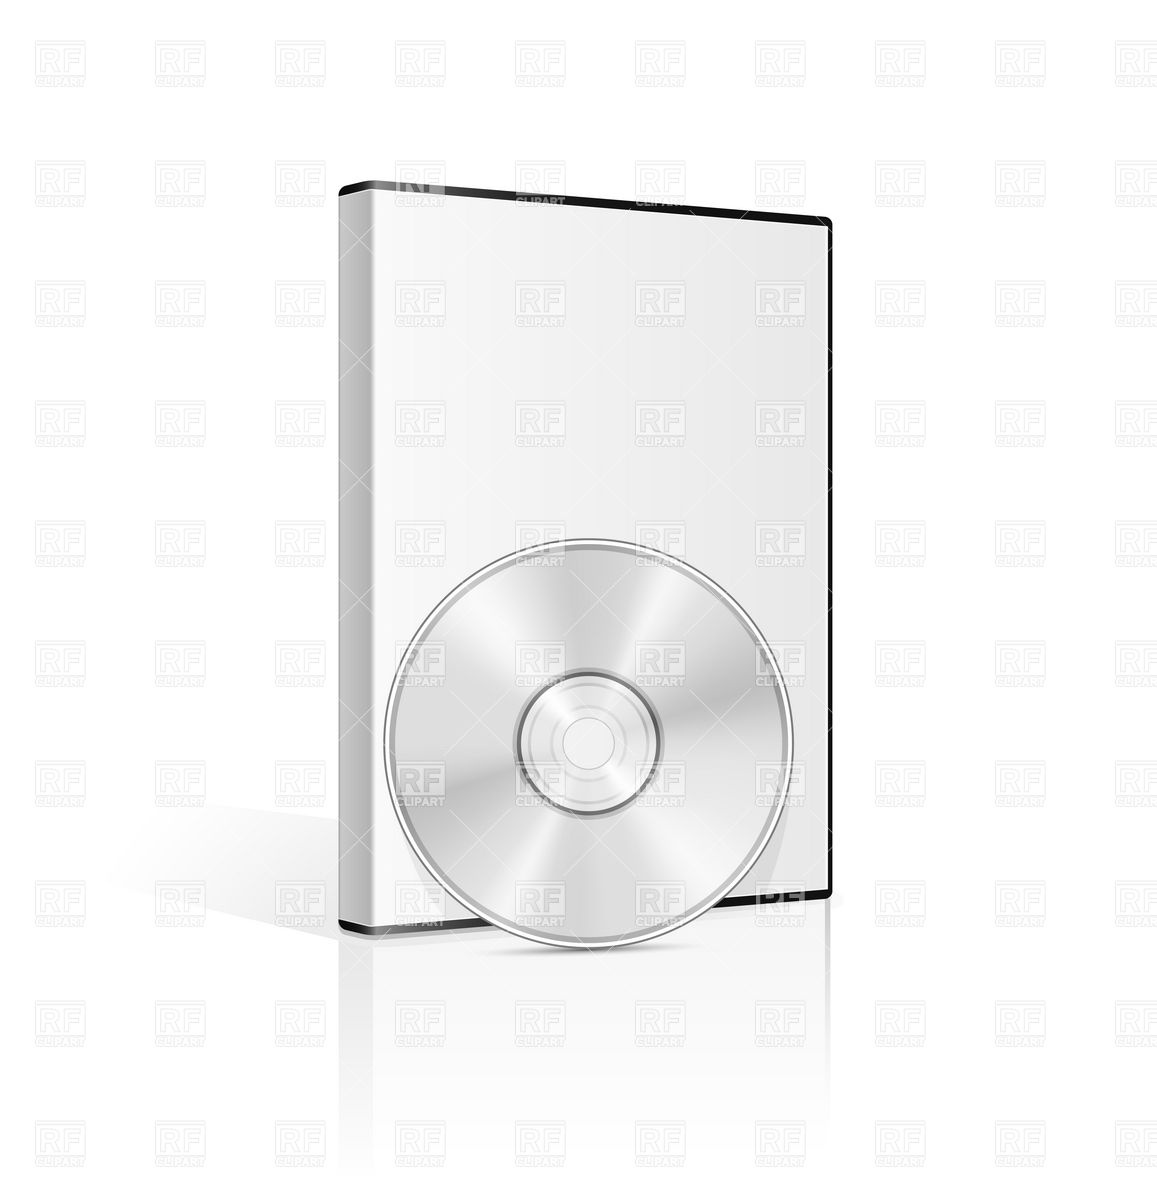 DVD case and CD disk Vector Image #5650.